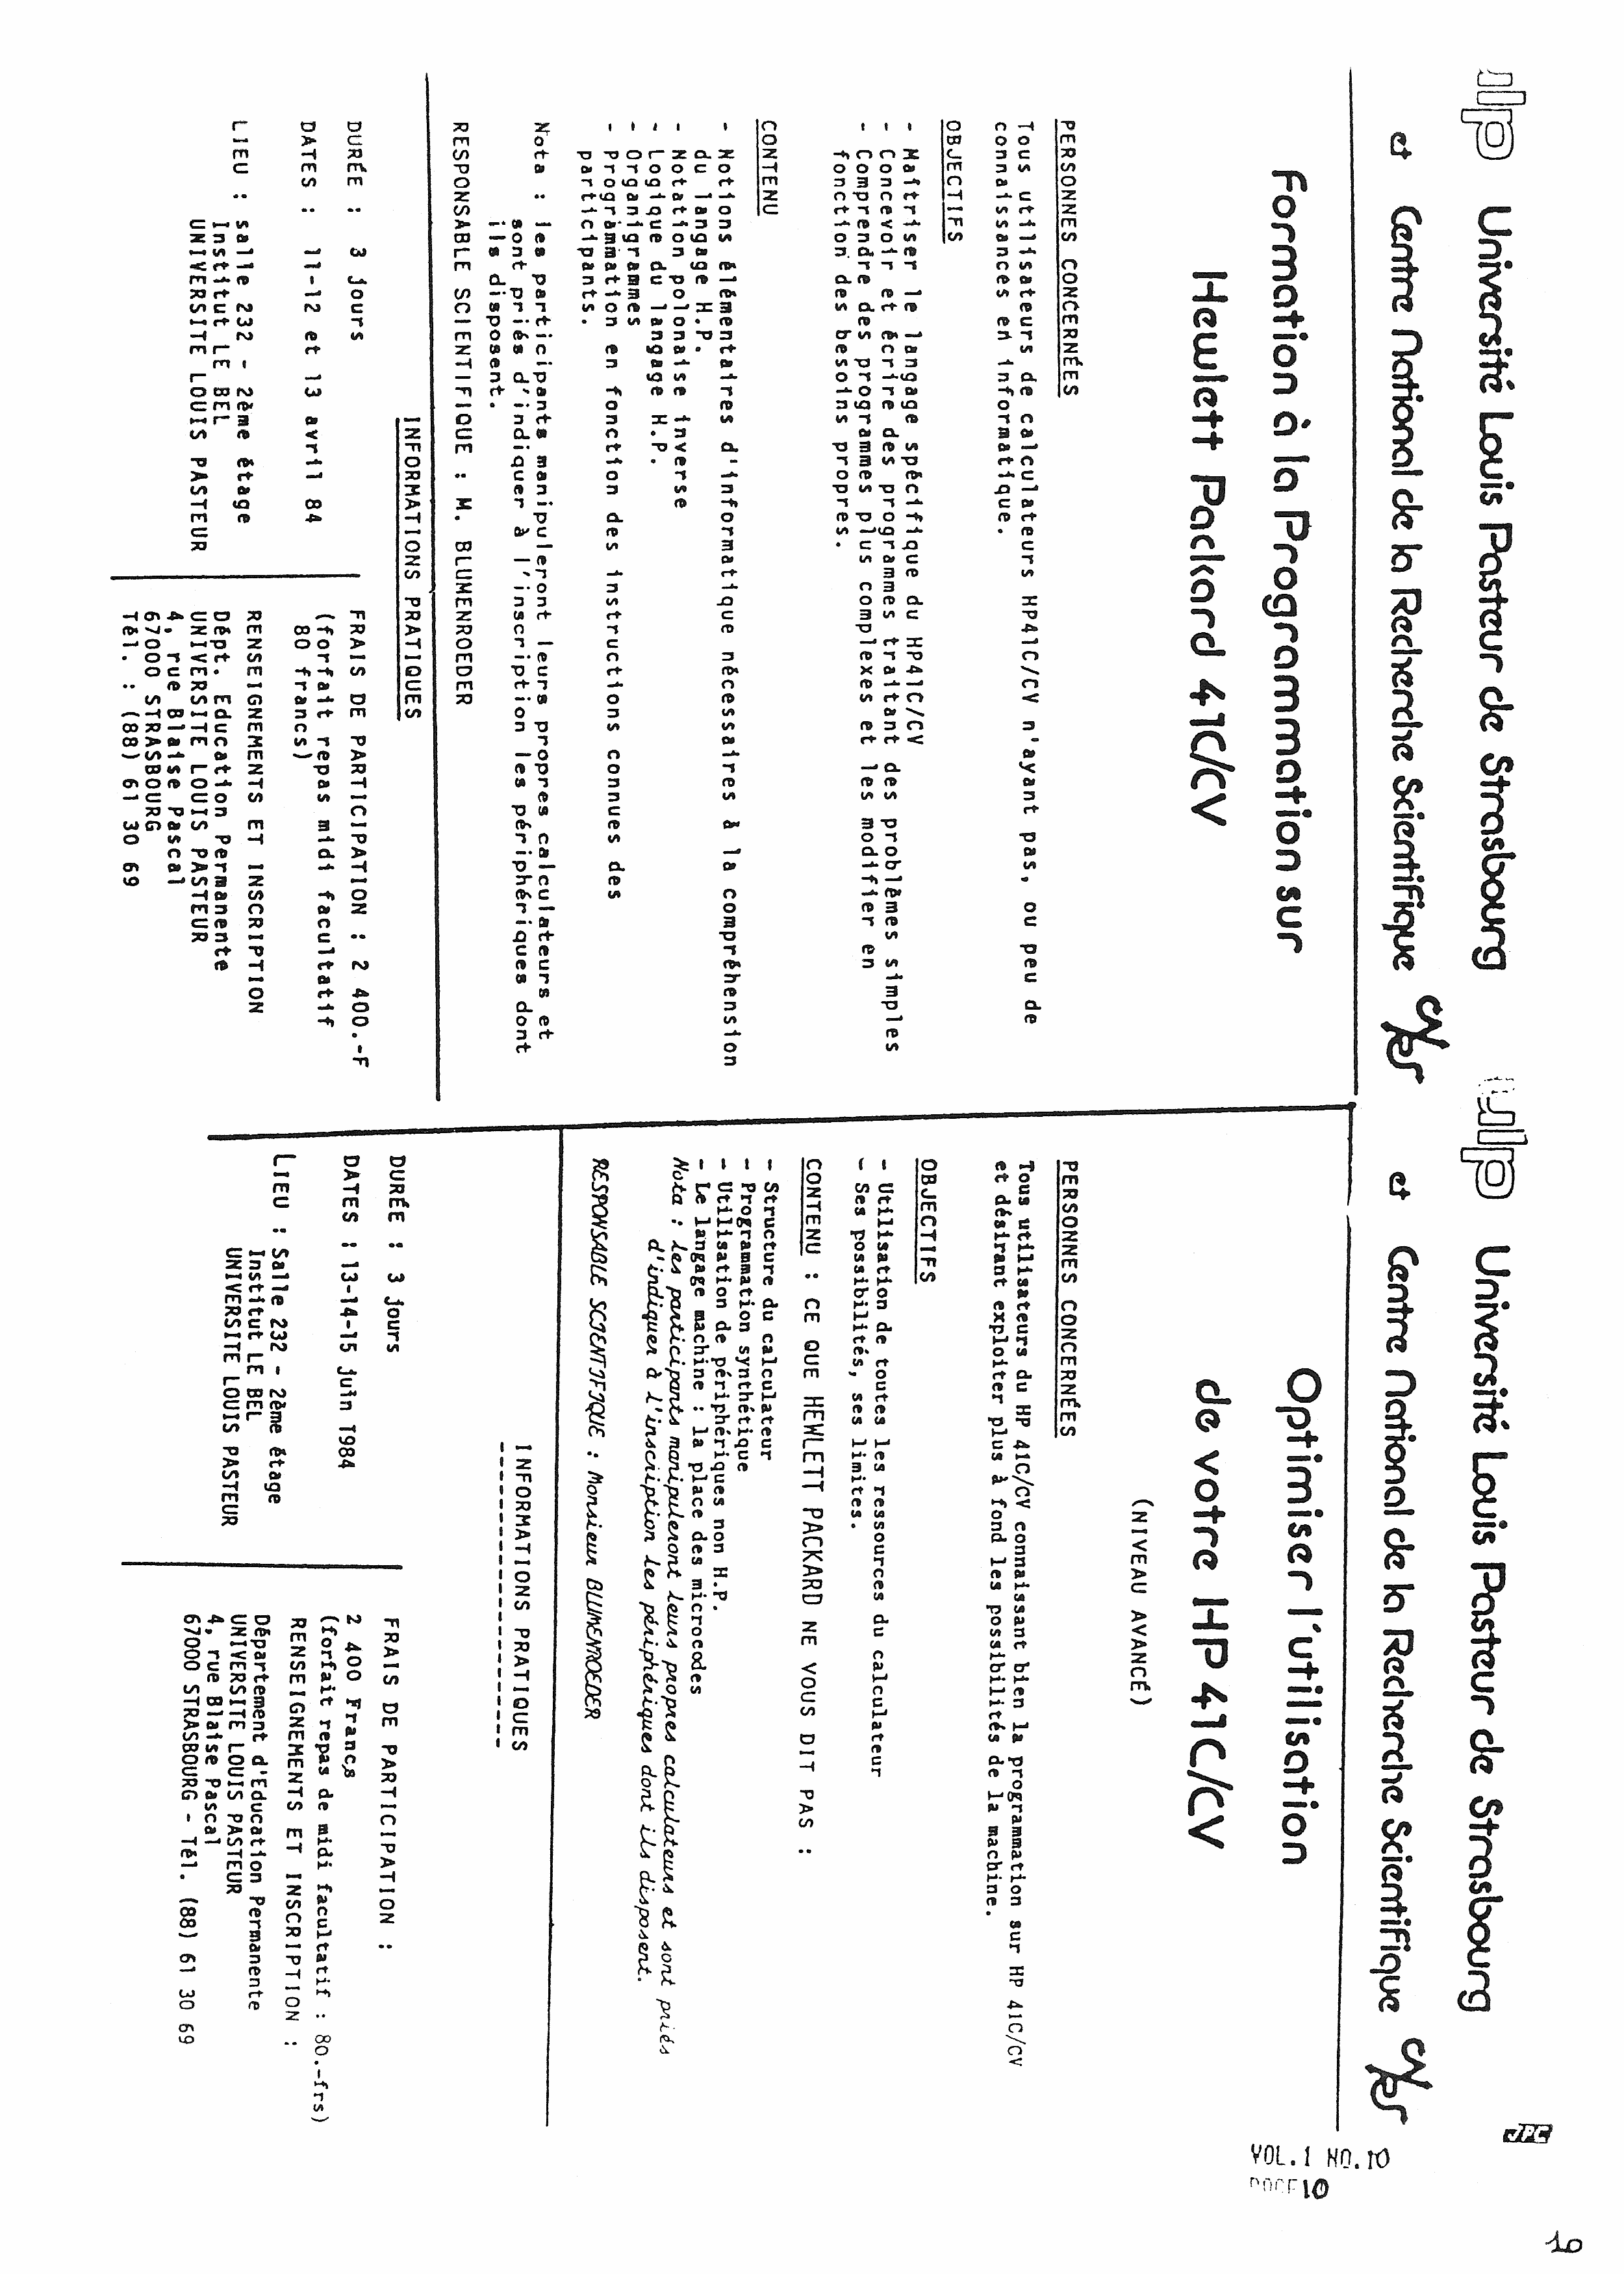 Jp-10-page-10-1000